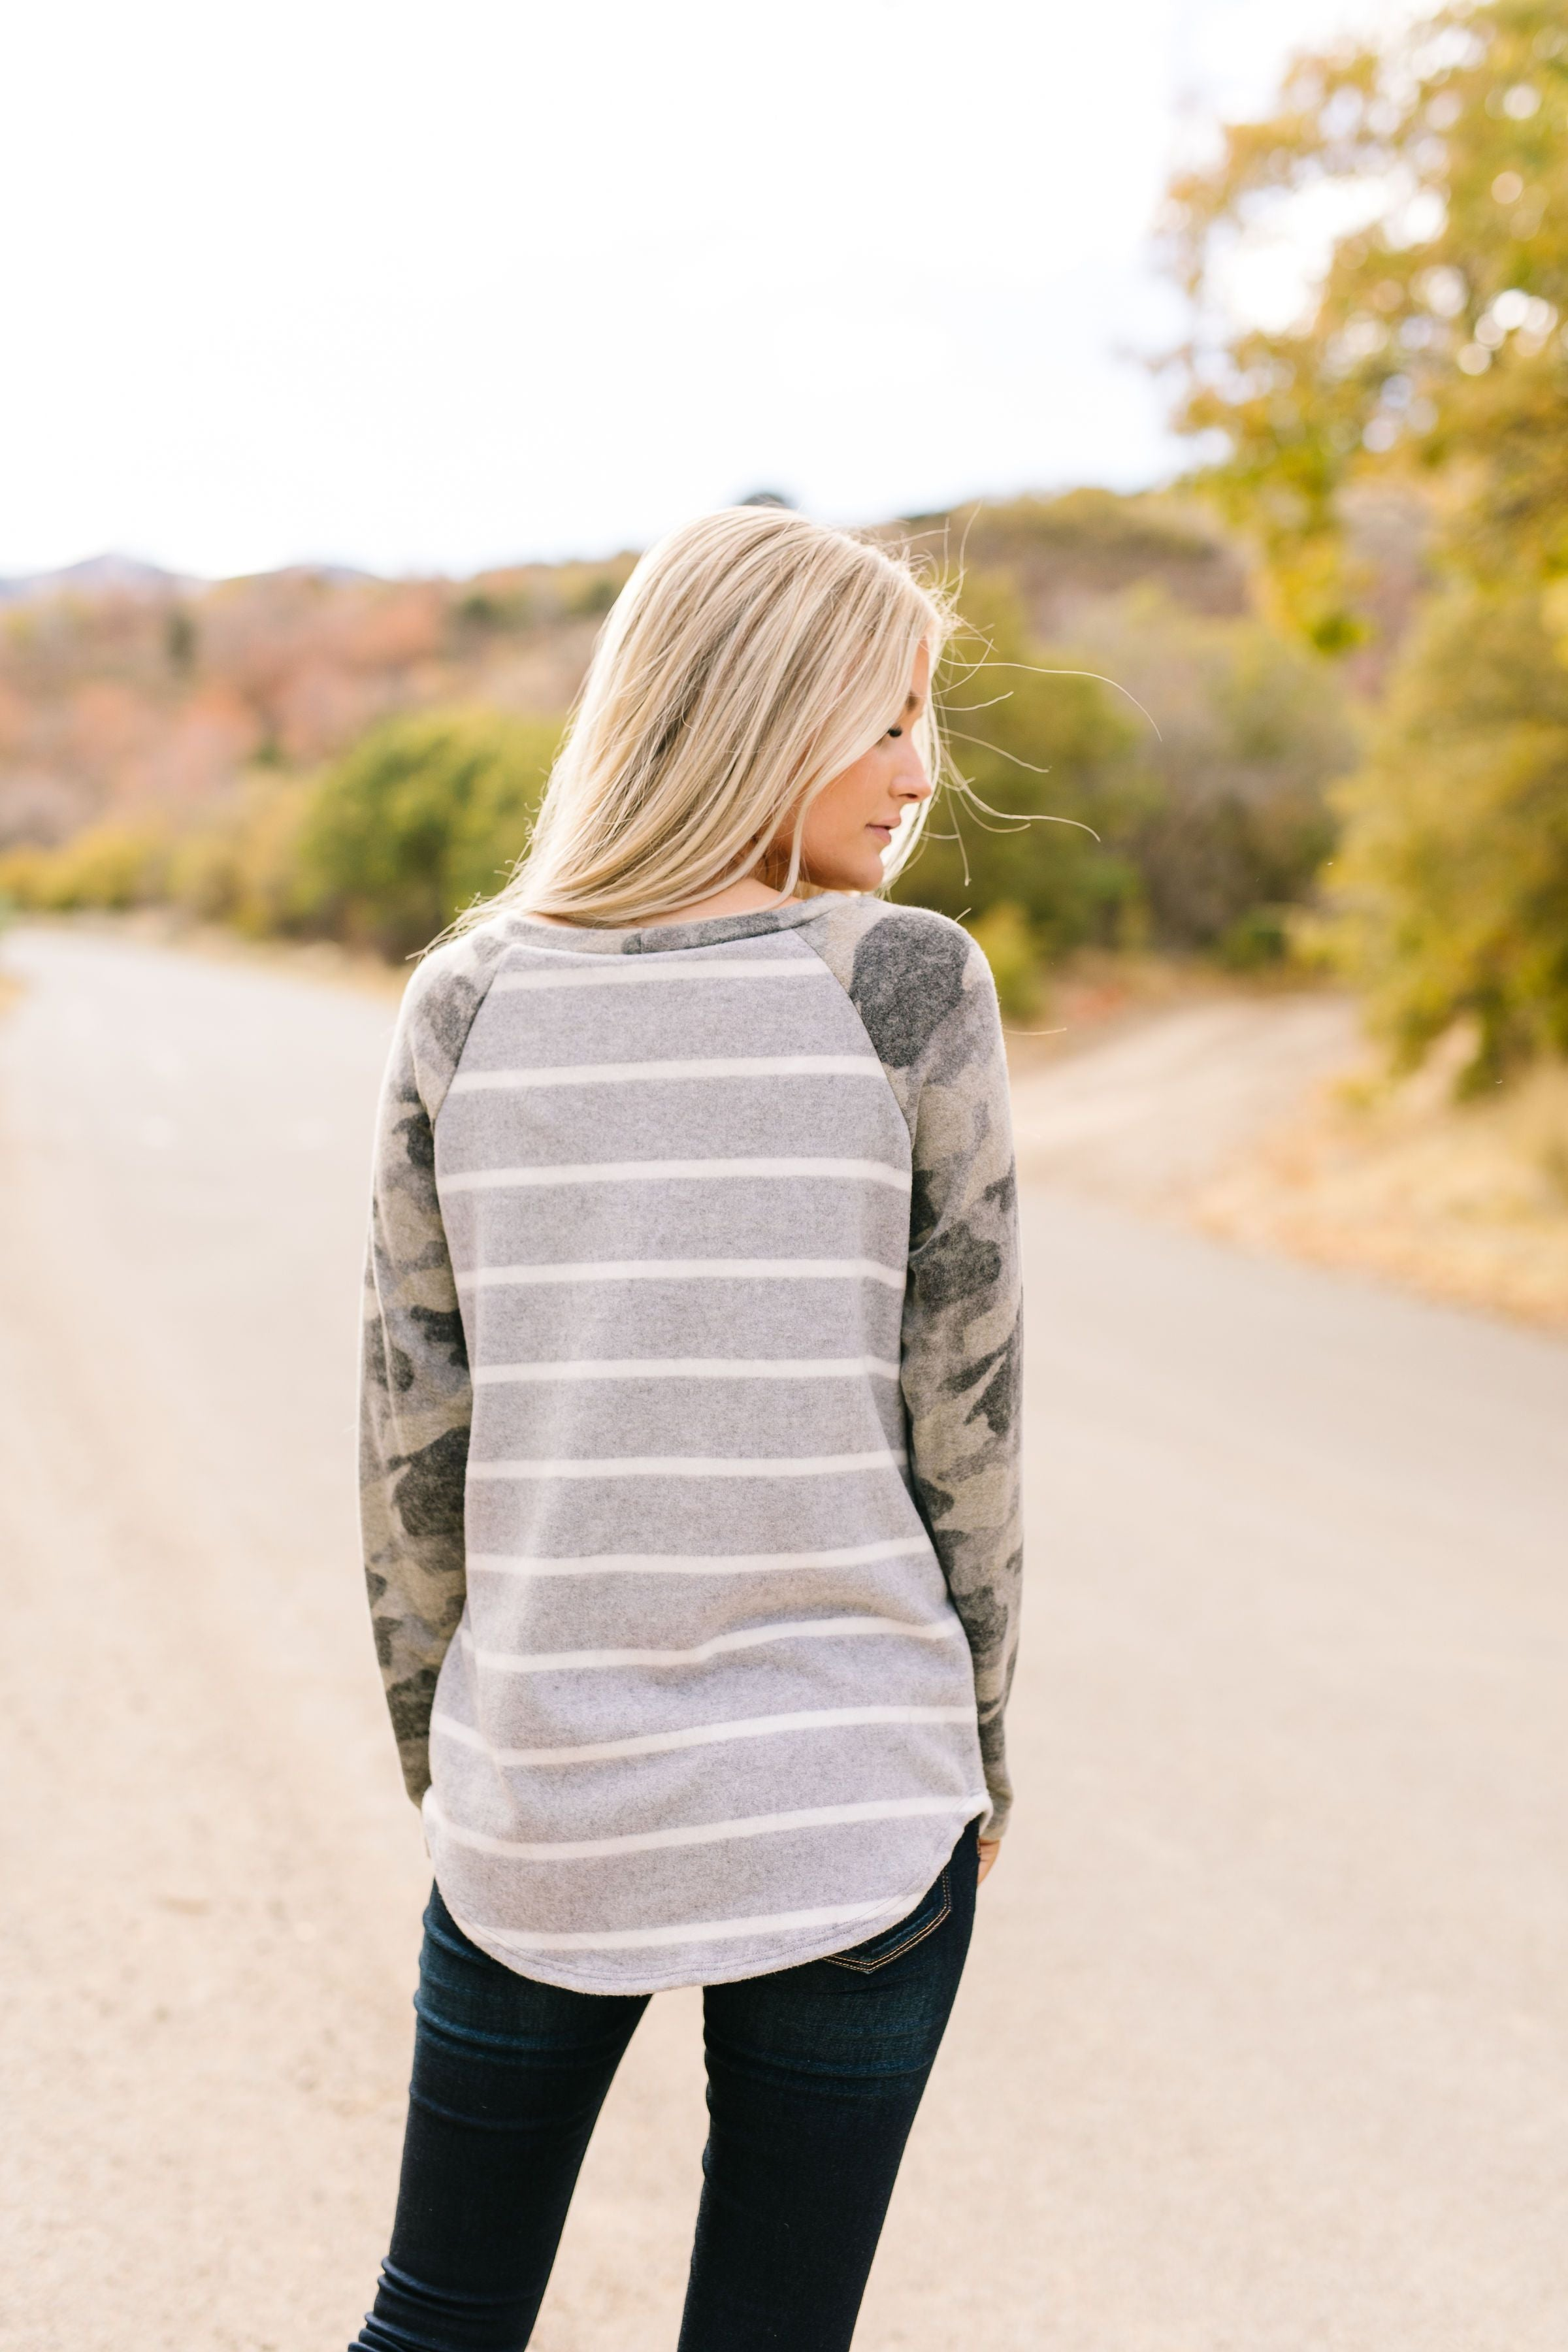 The Hunt Is Over Camouflage Raglan Sleeved Top - ALL SALES FINAL